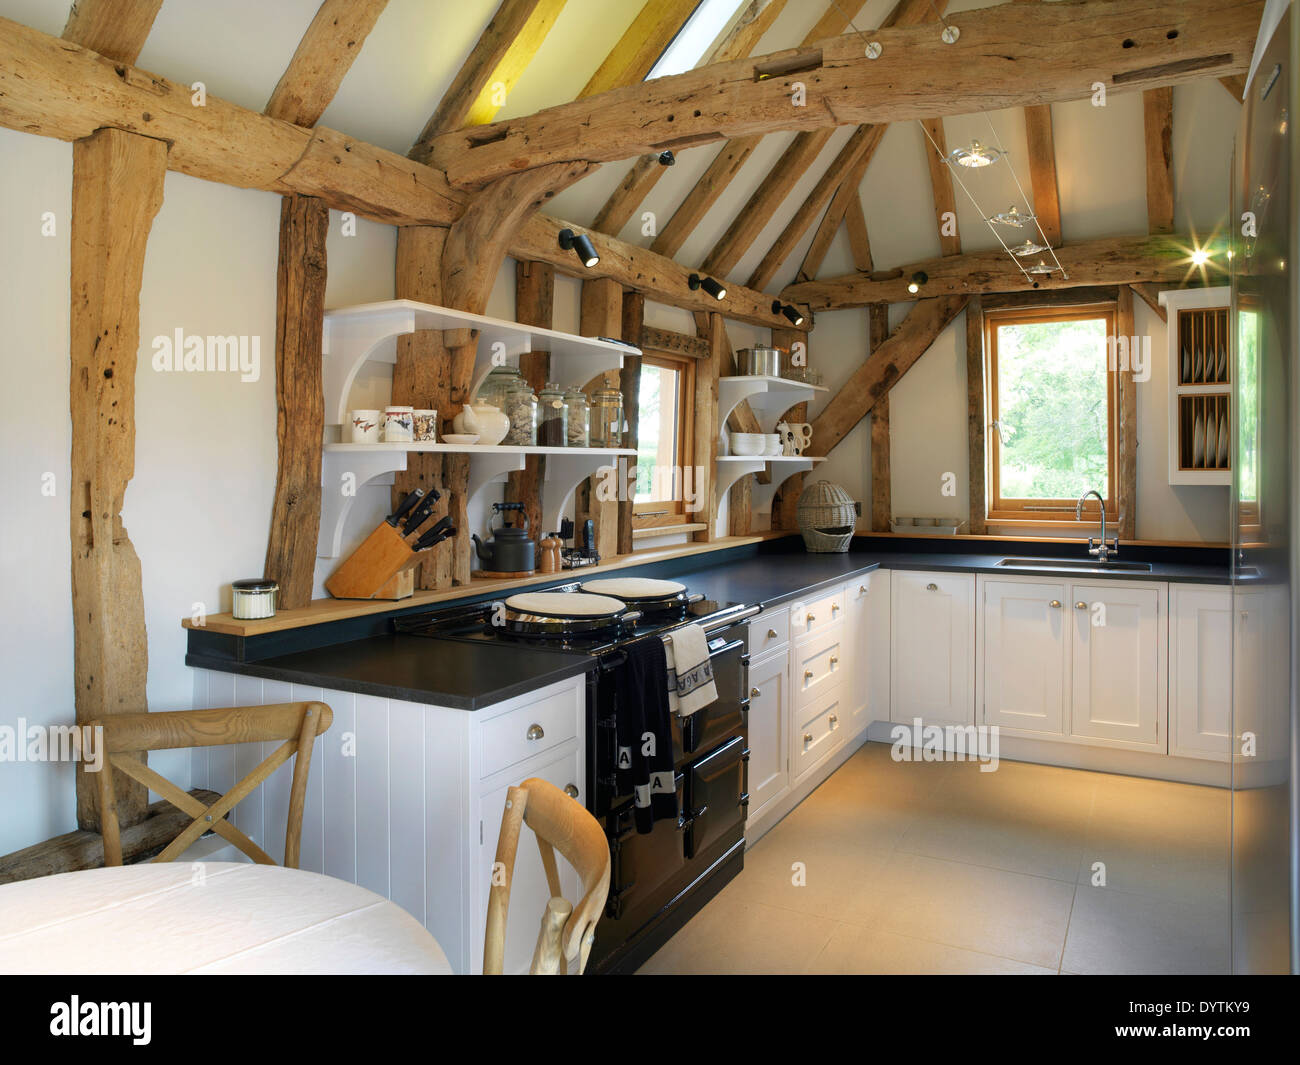 Modern Kitchen In Barn Conversion With Exposed Beams, Field Place Barns,  Surrey